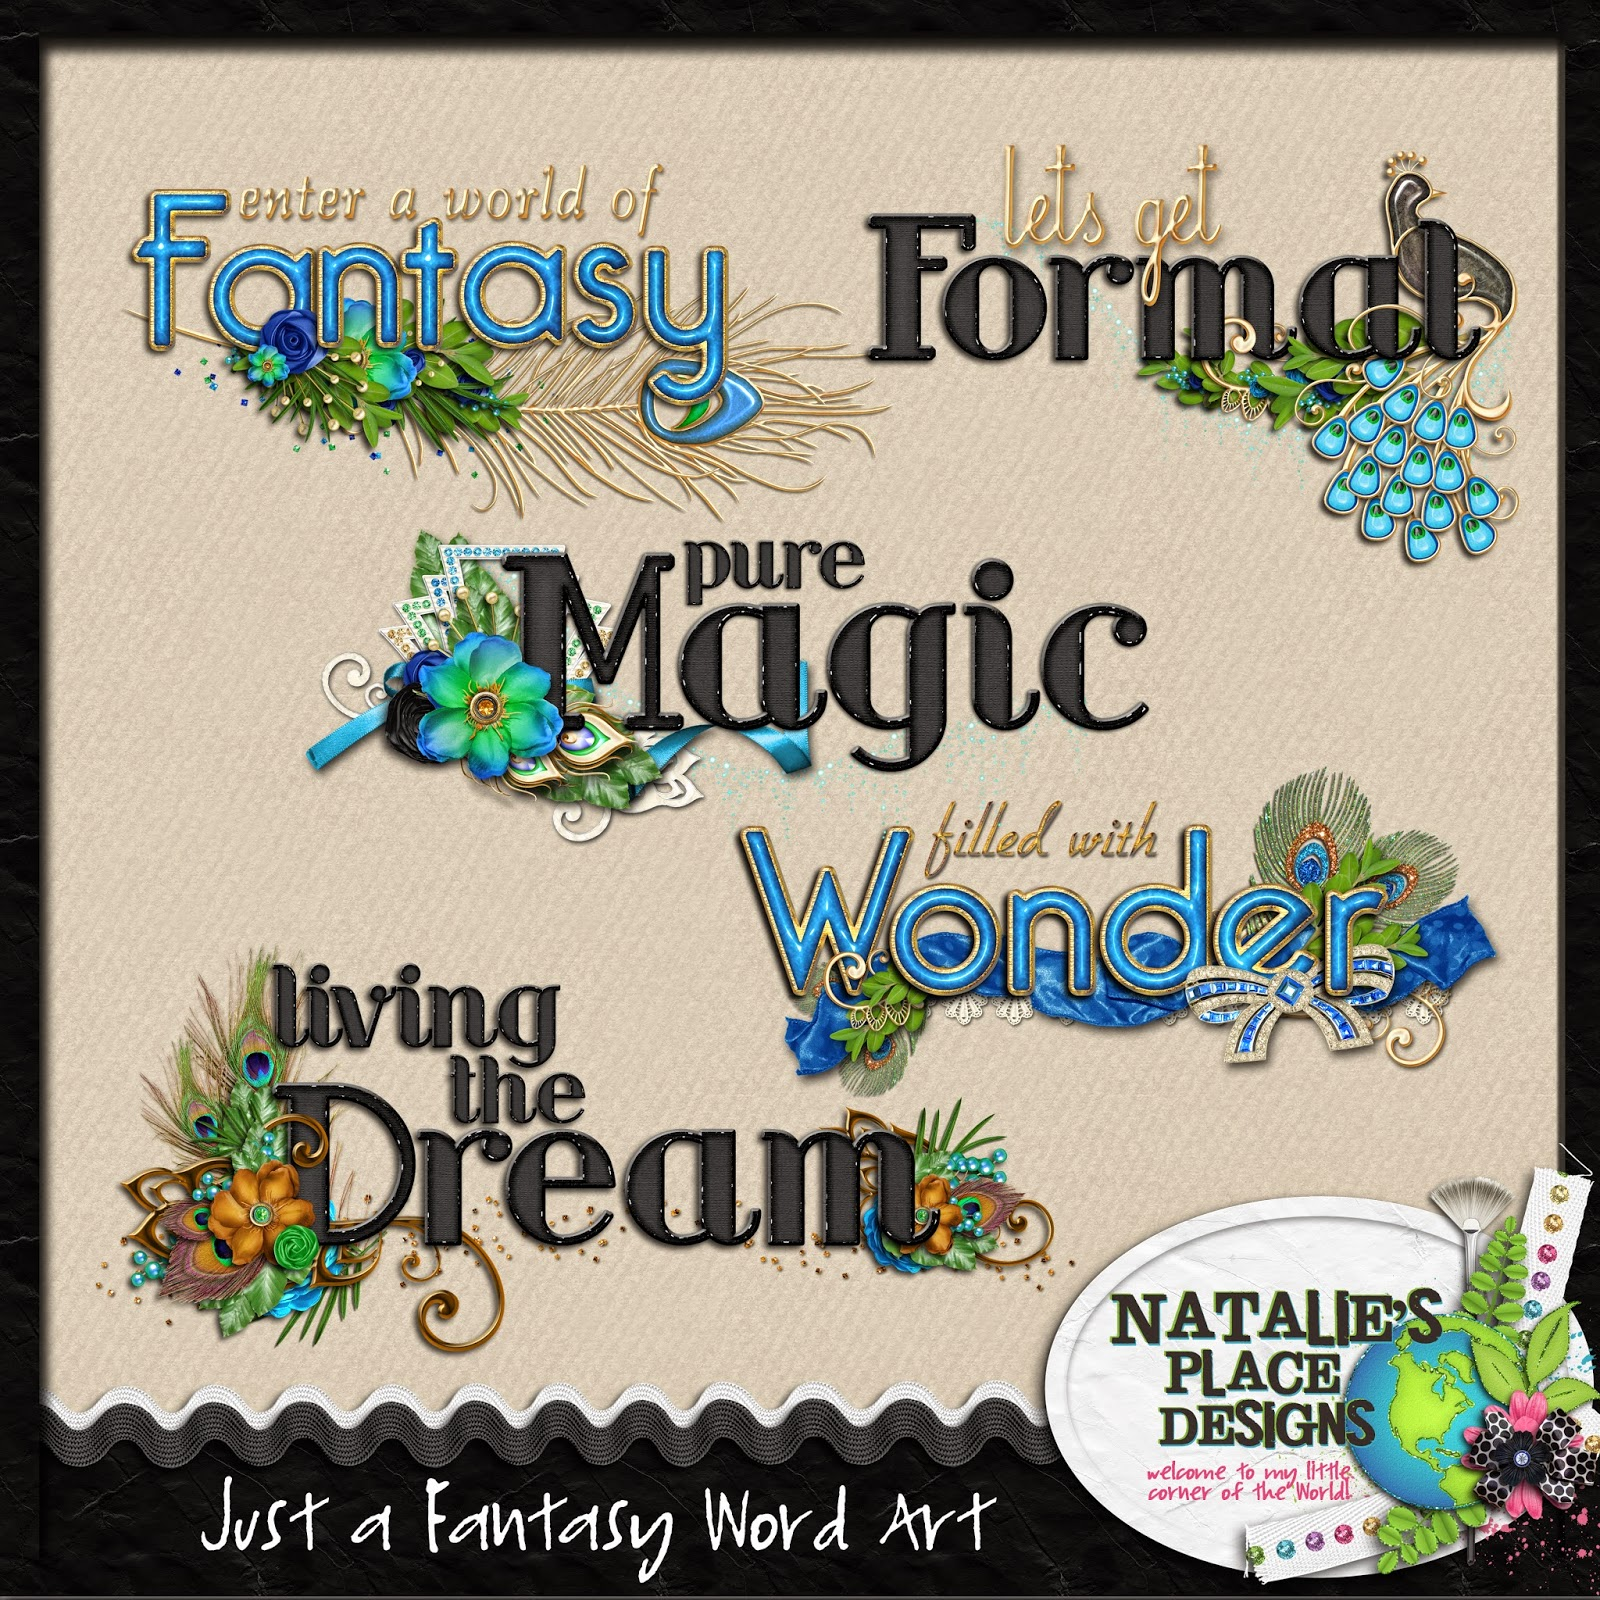 http://www.nataliesplacedesigns.com/store/p465/Just_a_Fantasy_Word_Art.html